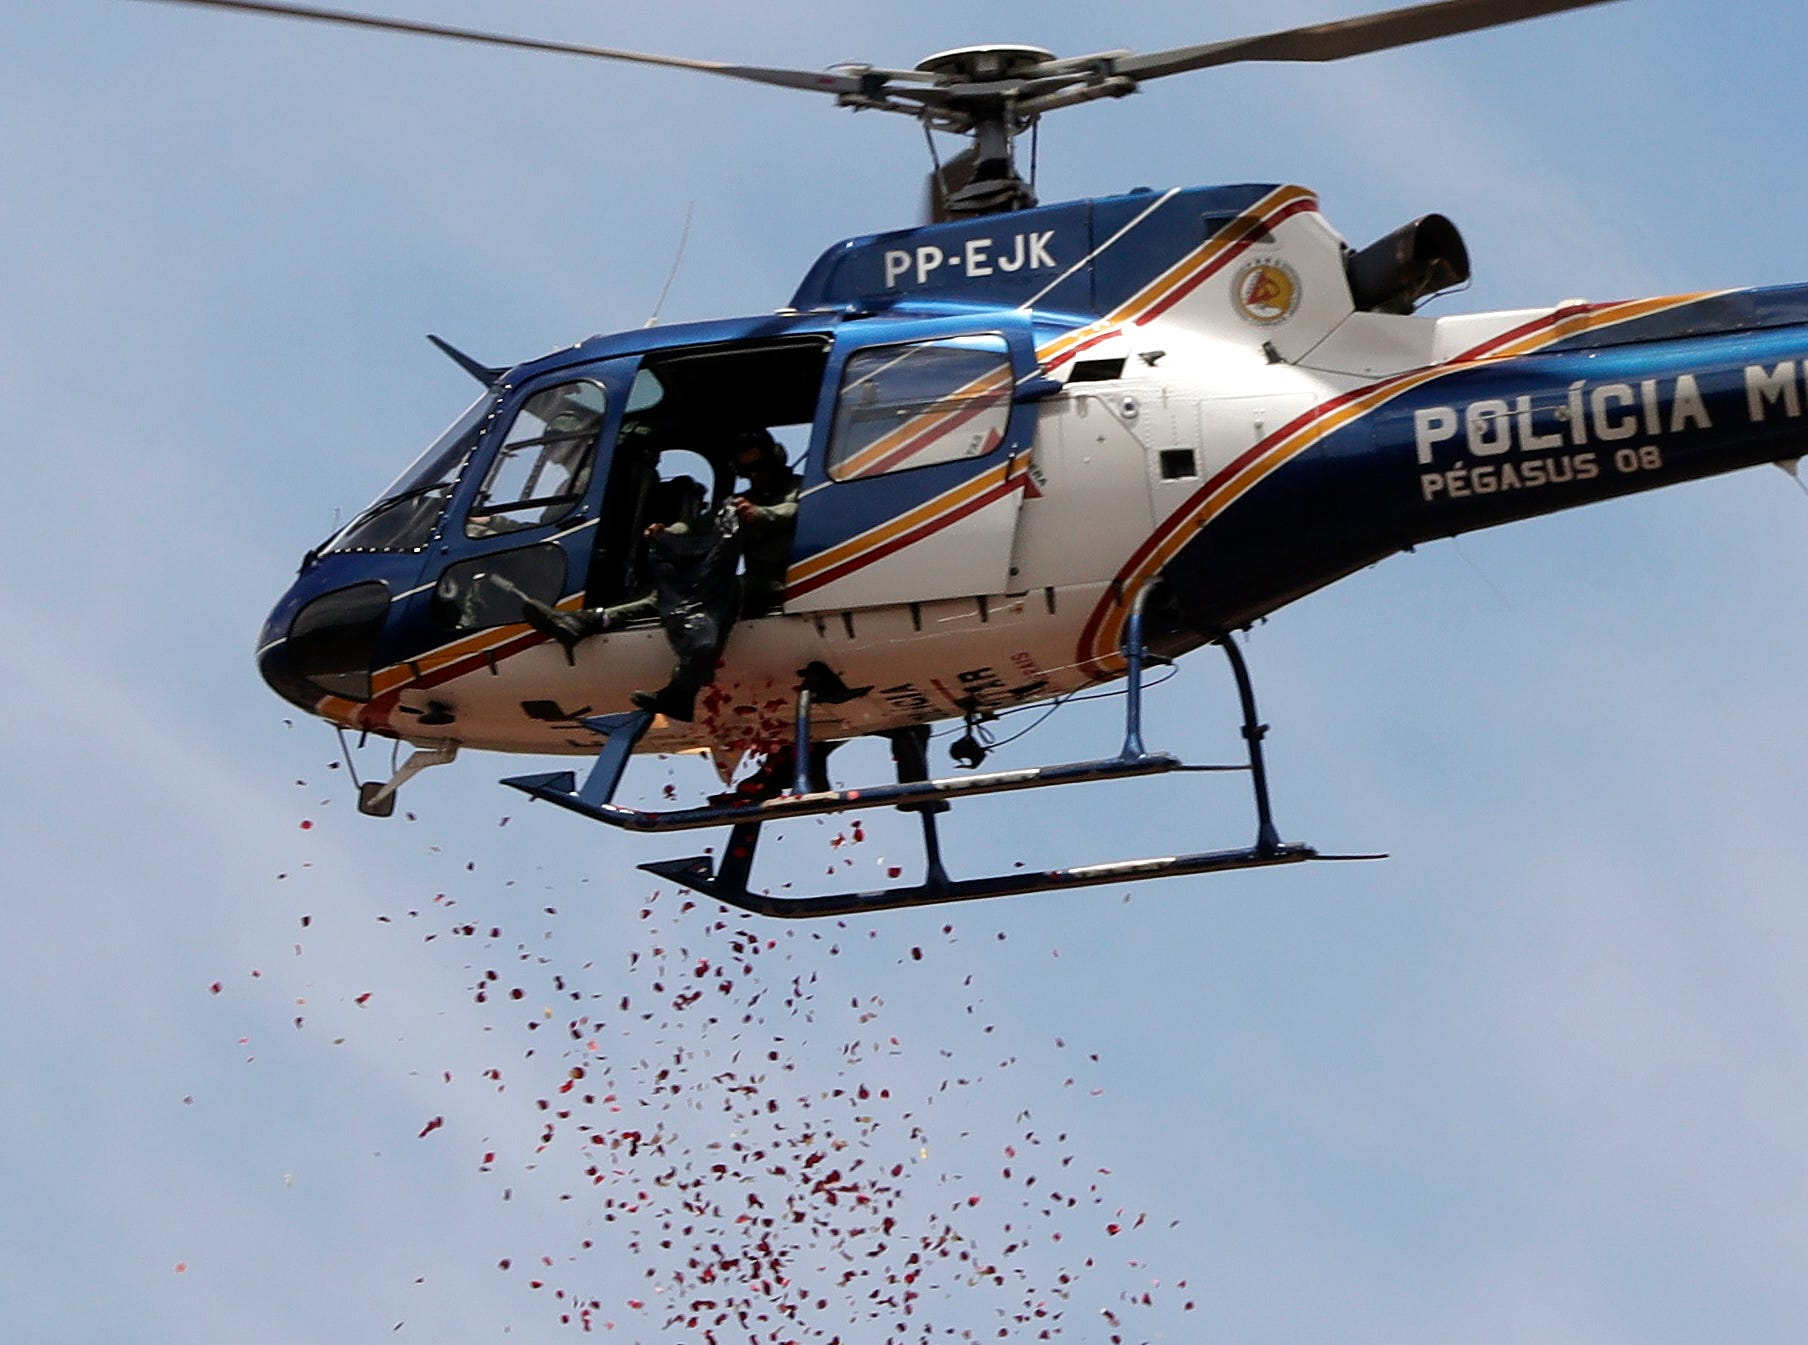 A helicopter releases flower petals on top of an iron ore mining complex paying homage to the 110 victims killed and 238 who are still missing after a mining dam collapsed there a week ago, in Brumadinho, Brazil, Friday, Feb. 1, 2019.